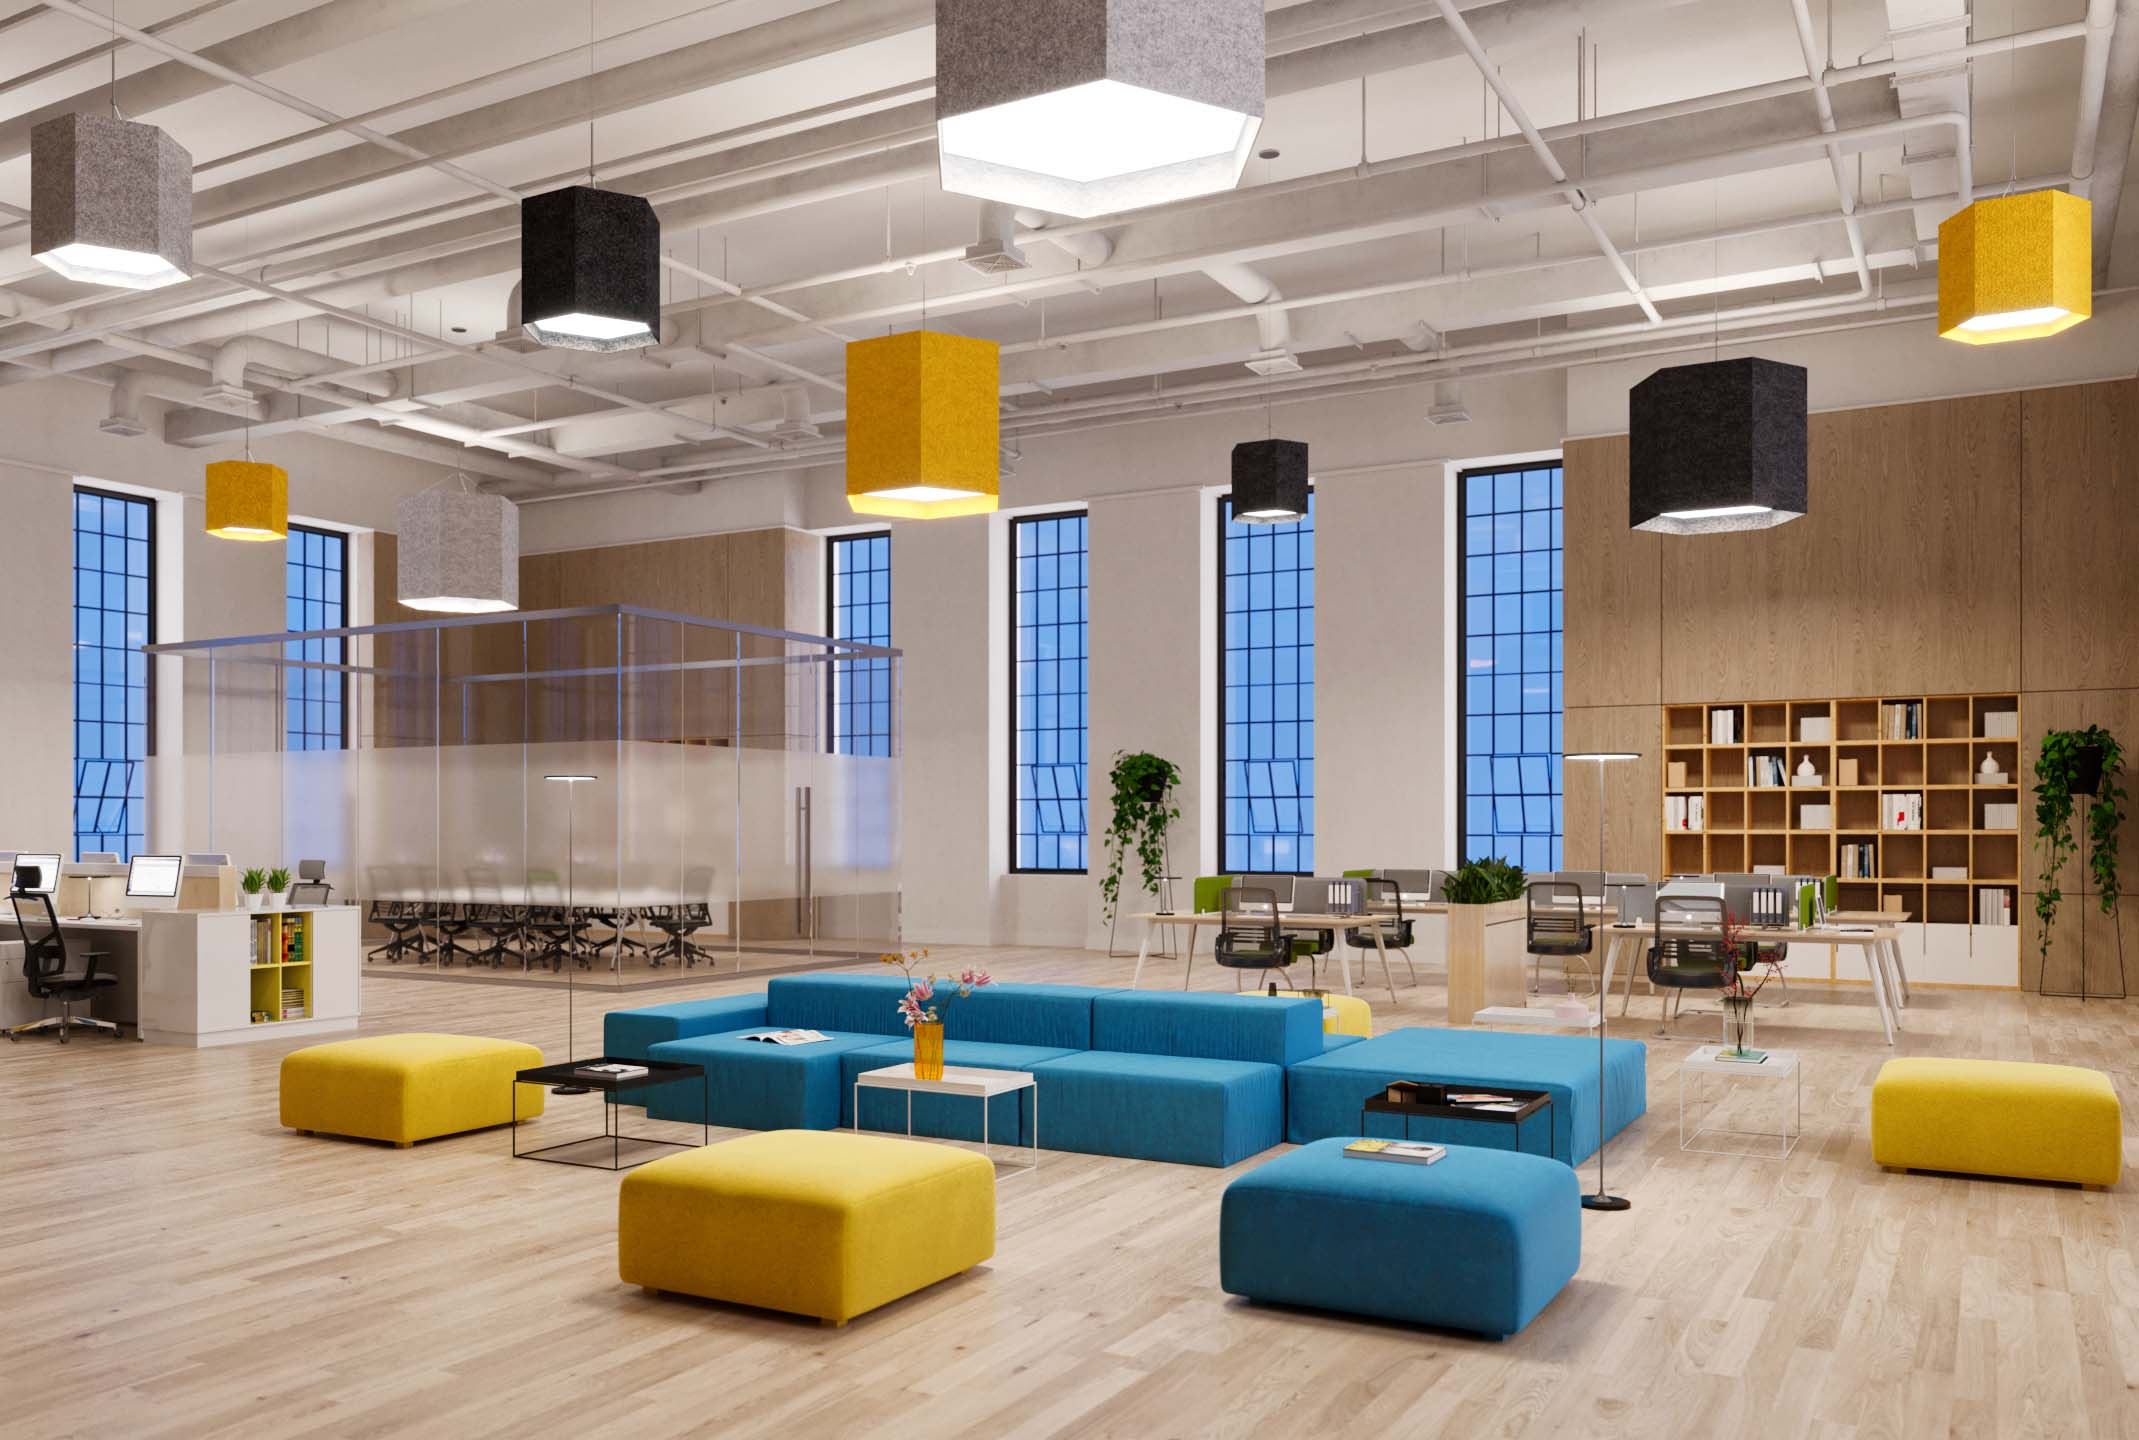 Visa Lighting acoustic felt commercial lighting shown in office and library.